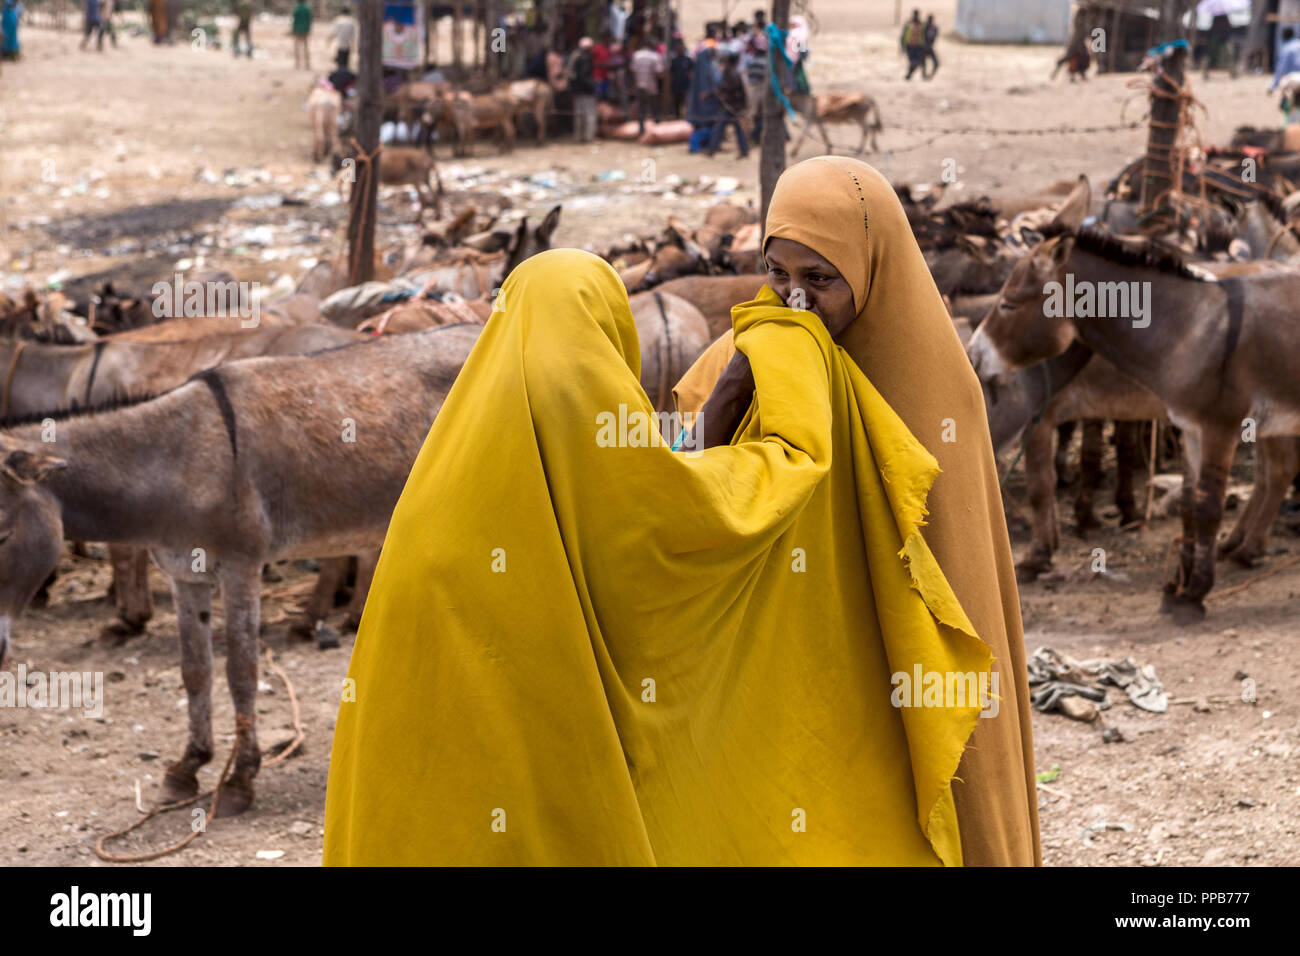 Relatives greeting each other by kissing hands, Dolo Mena market, Oromia Region, Ethiopia - Stock Image